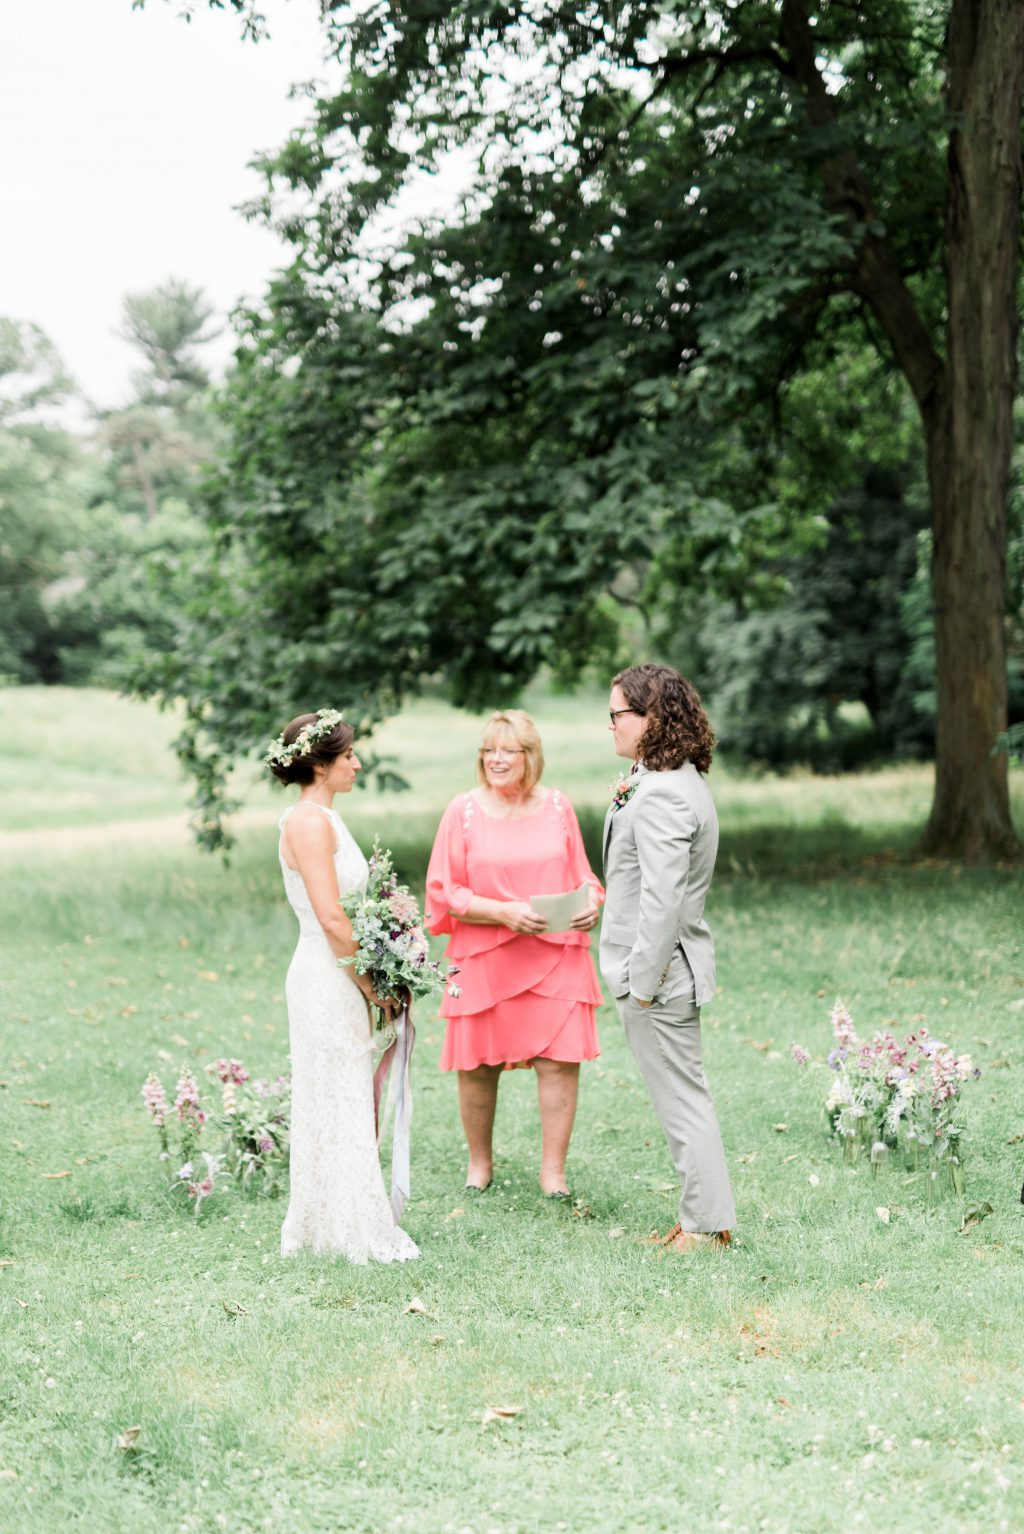 awbury-arboretum-wedding-DIY-boho-summer-haley-richter-photography-132